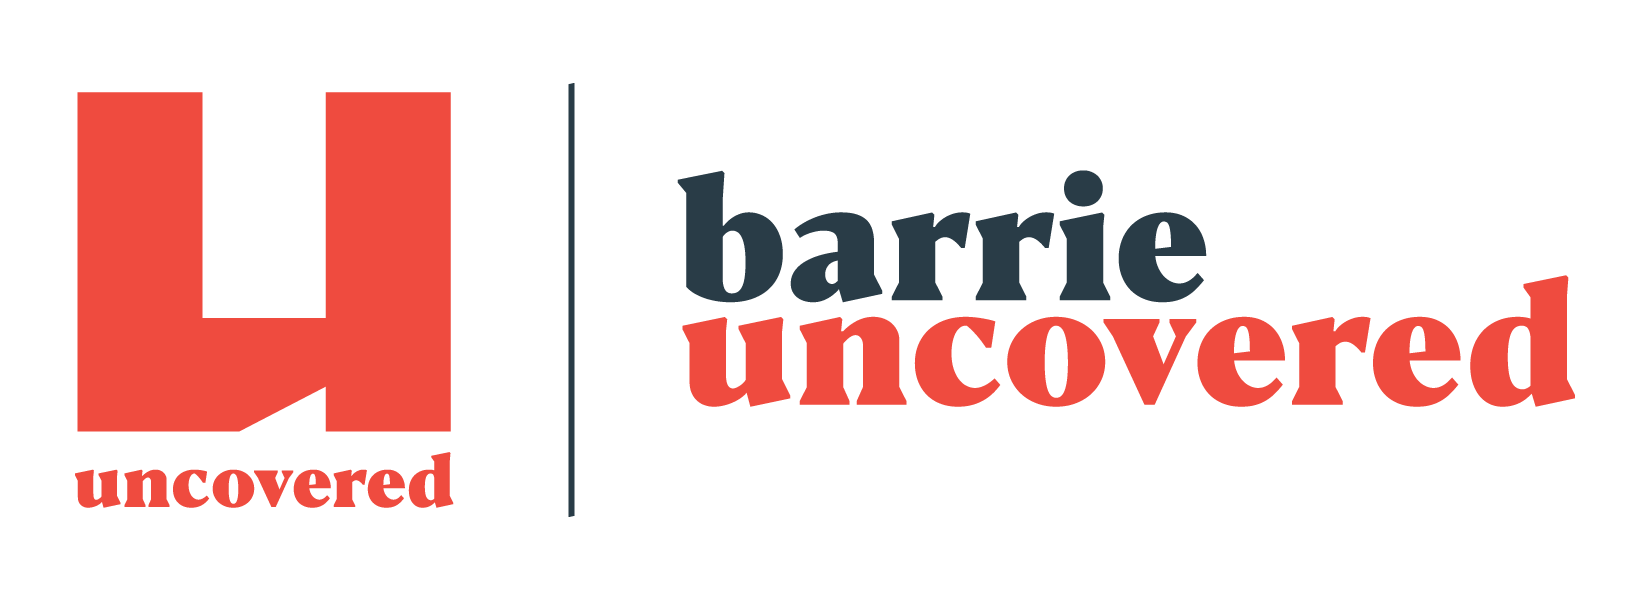 BarrieUncovered-final[1].png